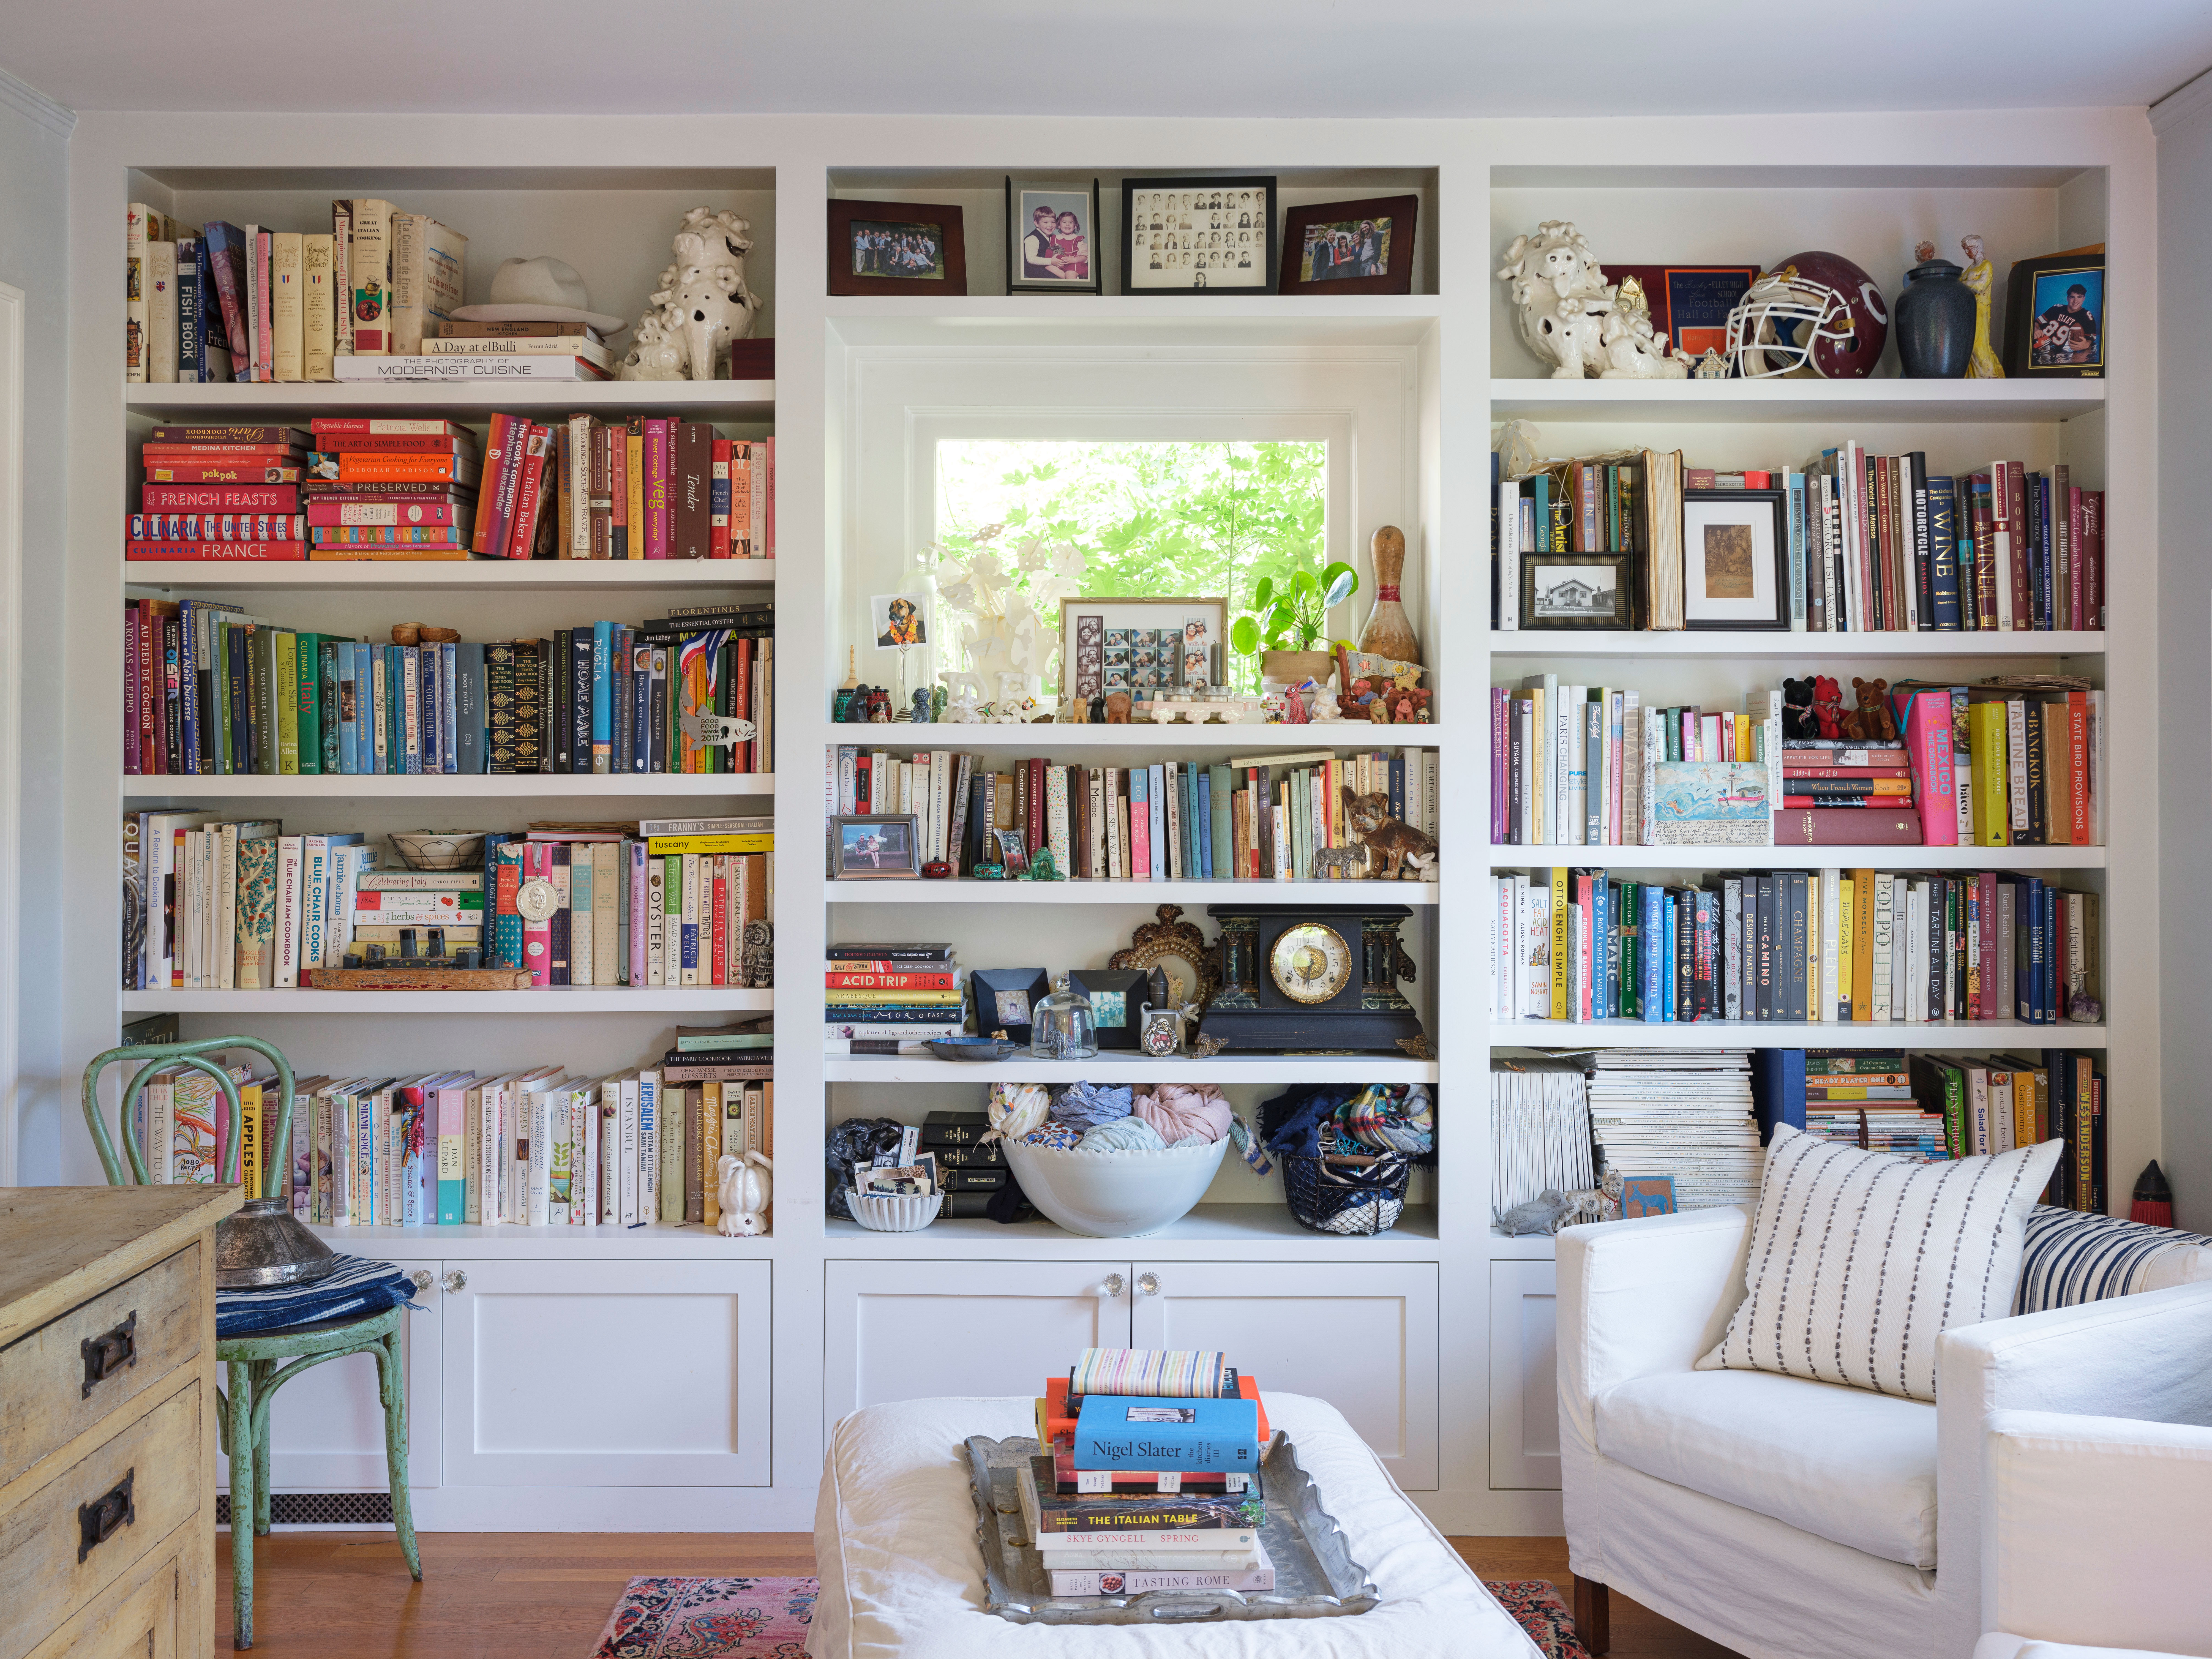 A living area with a white couch, table, chair, and desk. There are white built-in shelves on the wall. There are books, various objects, and works of art on the shelves.